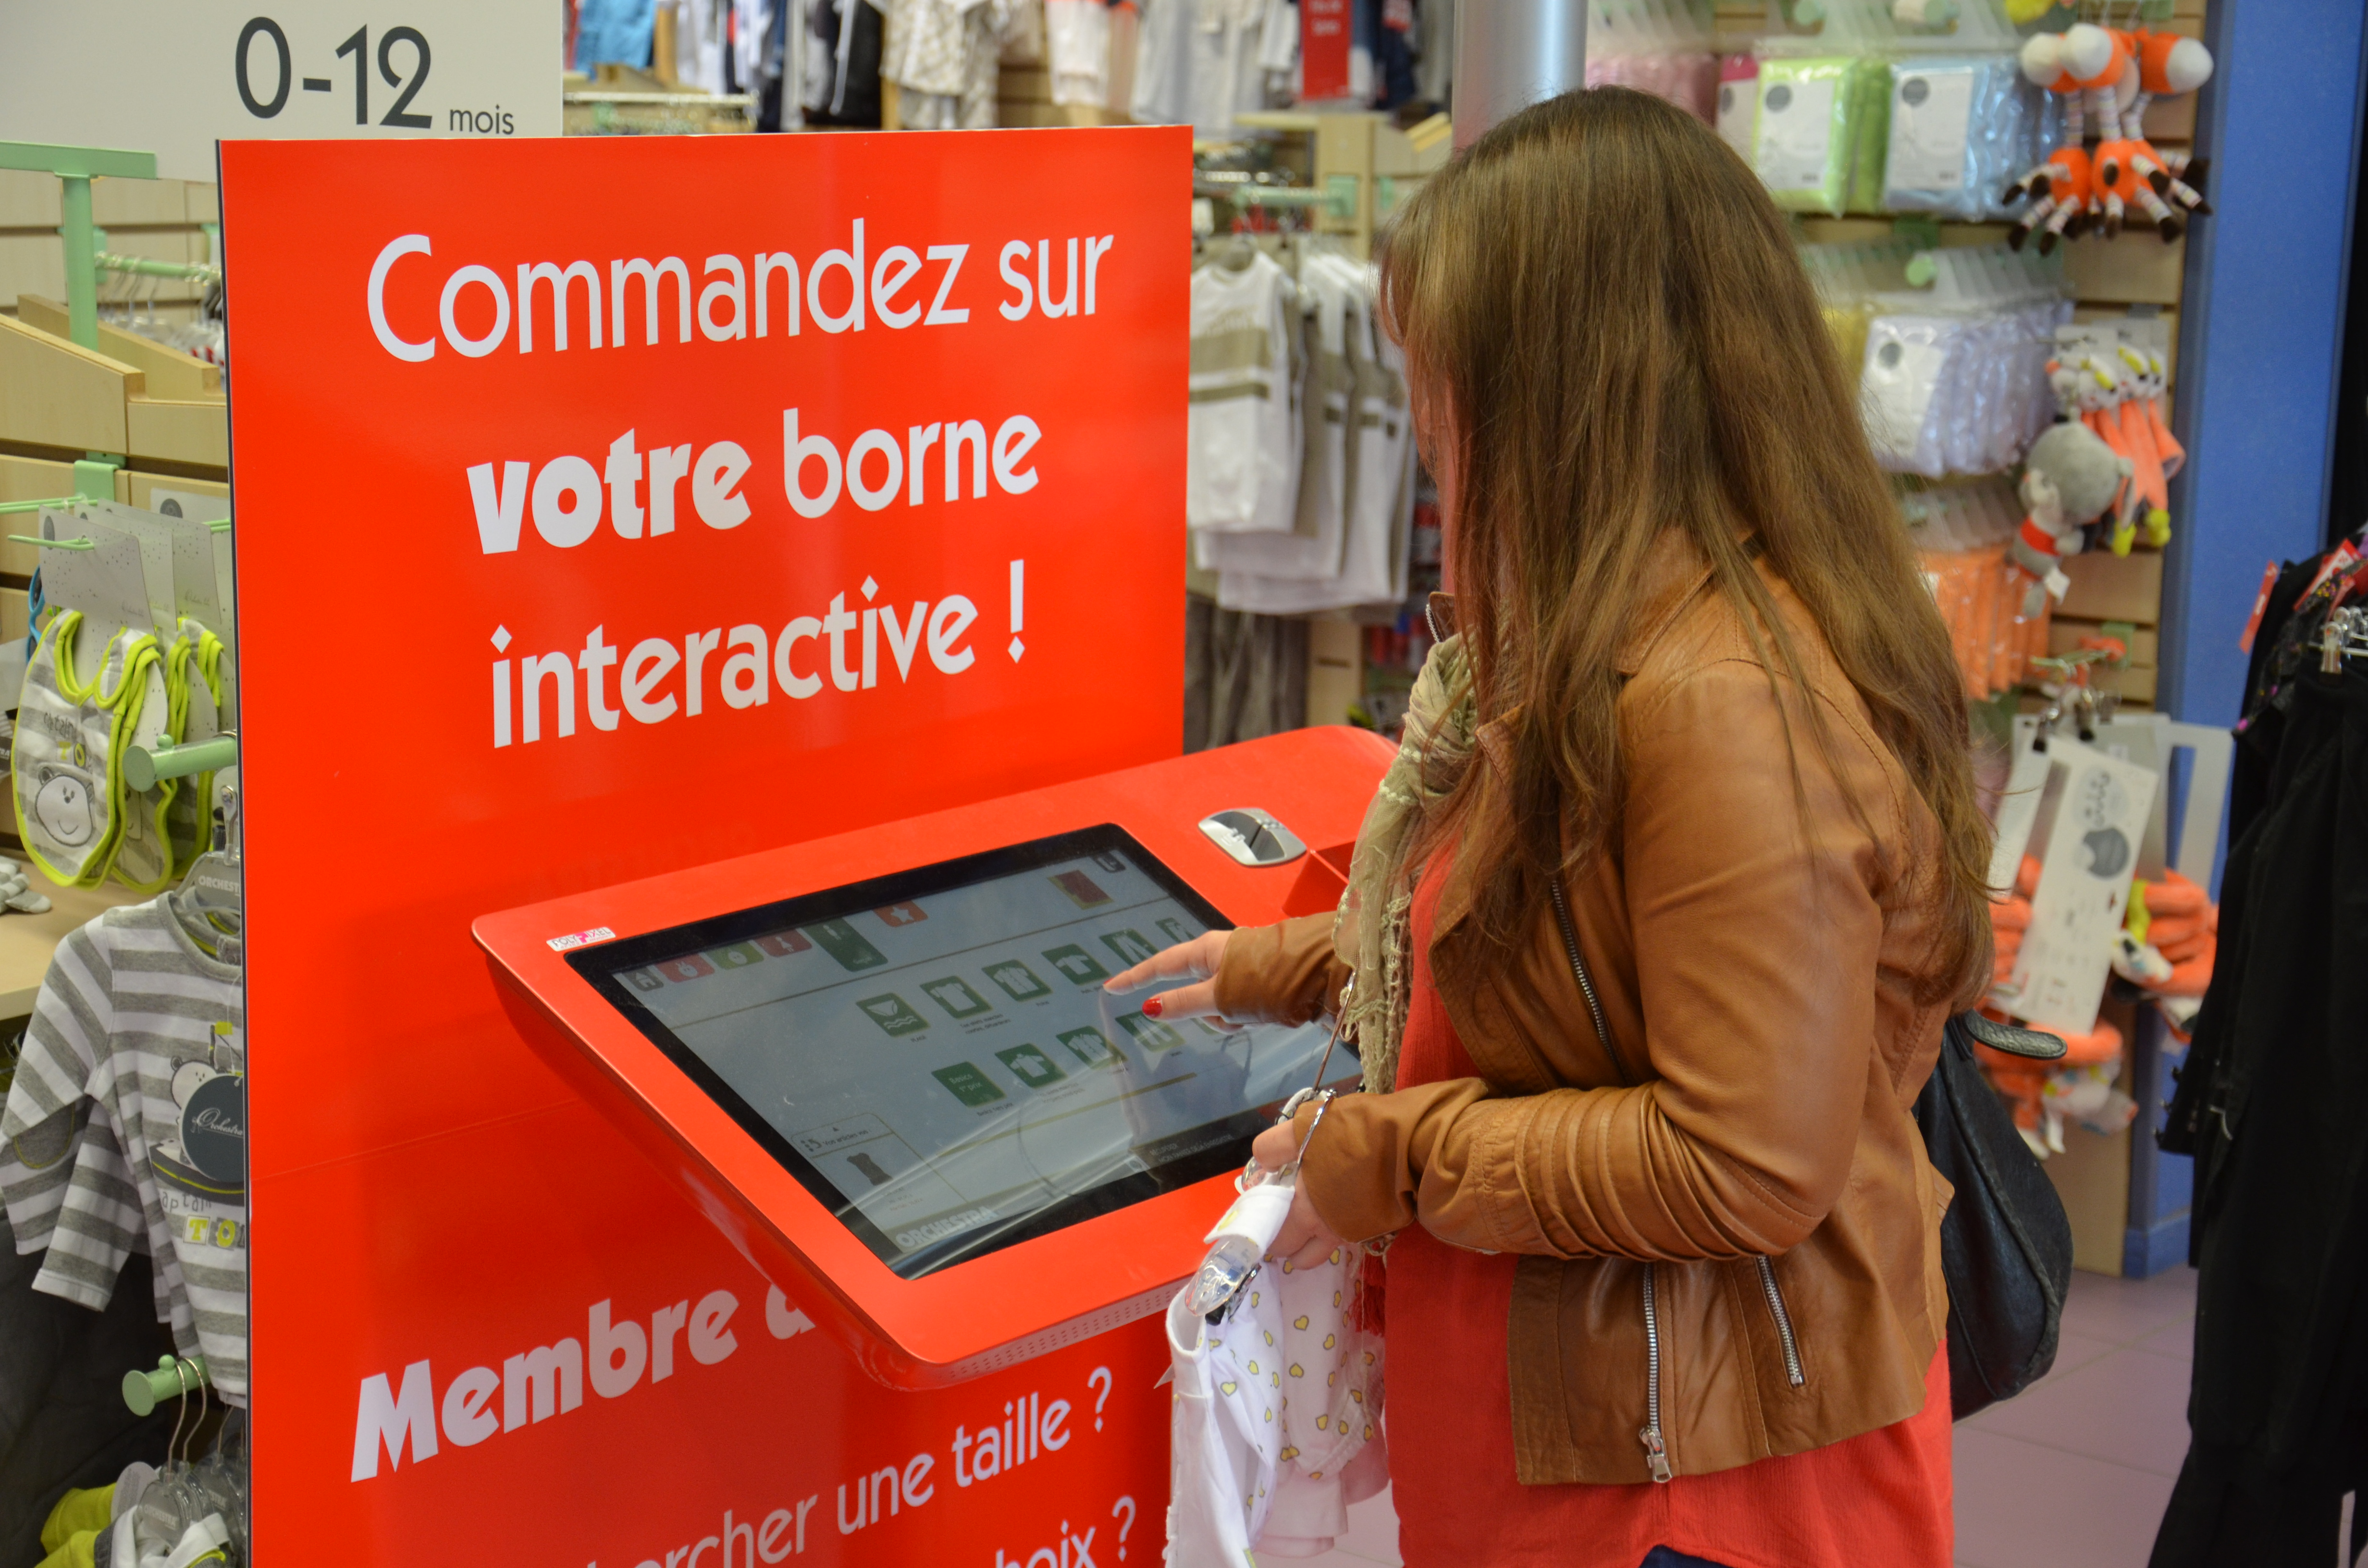 A mother in-store using an Interactive Kiosk